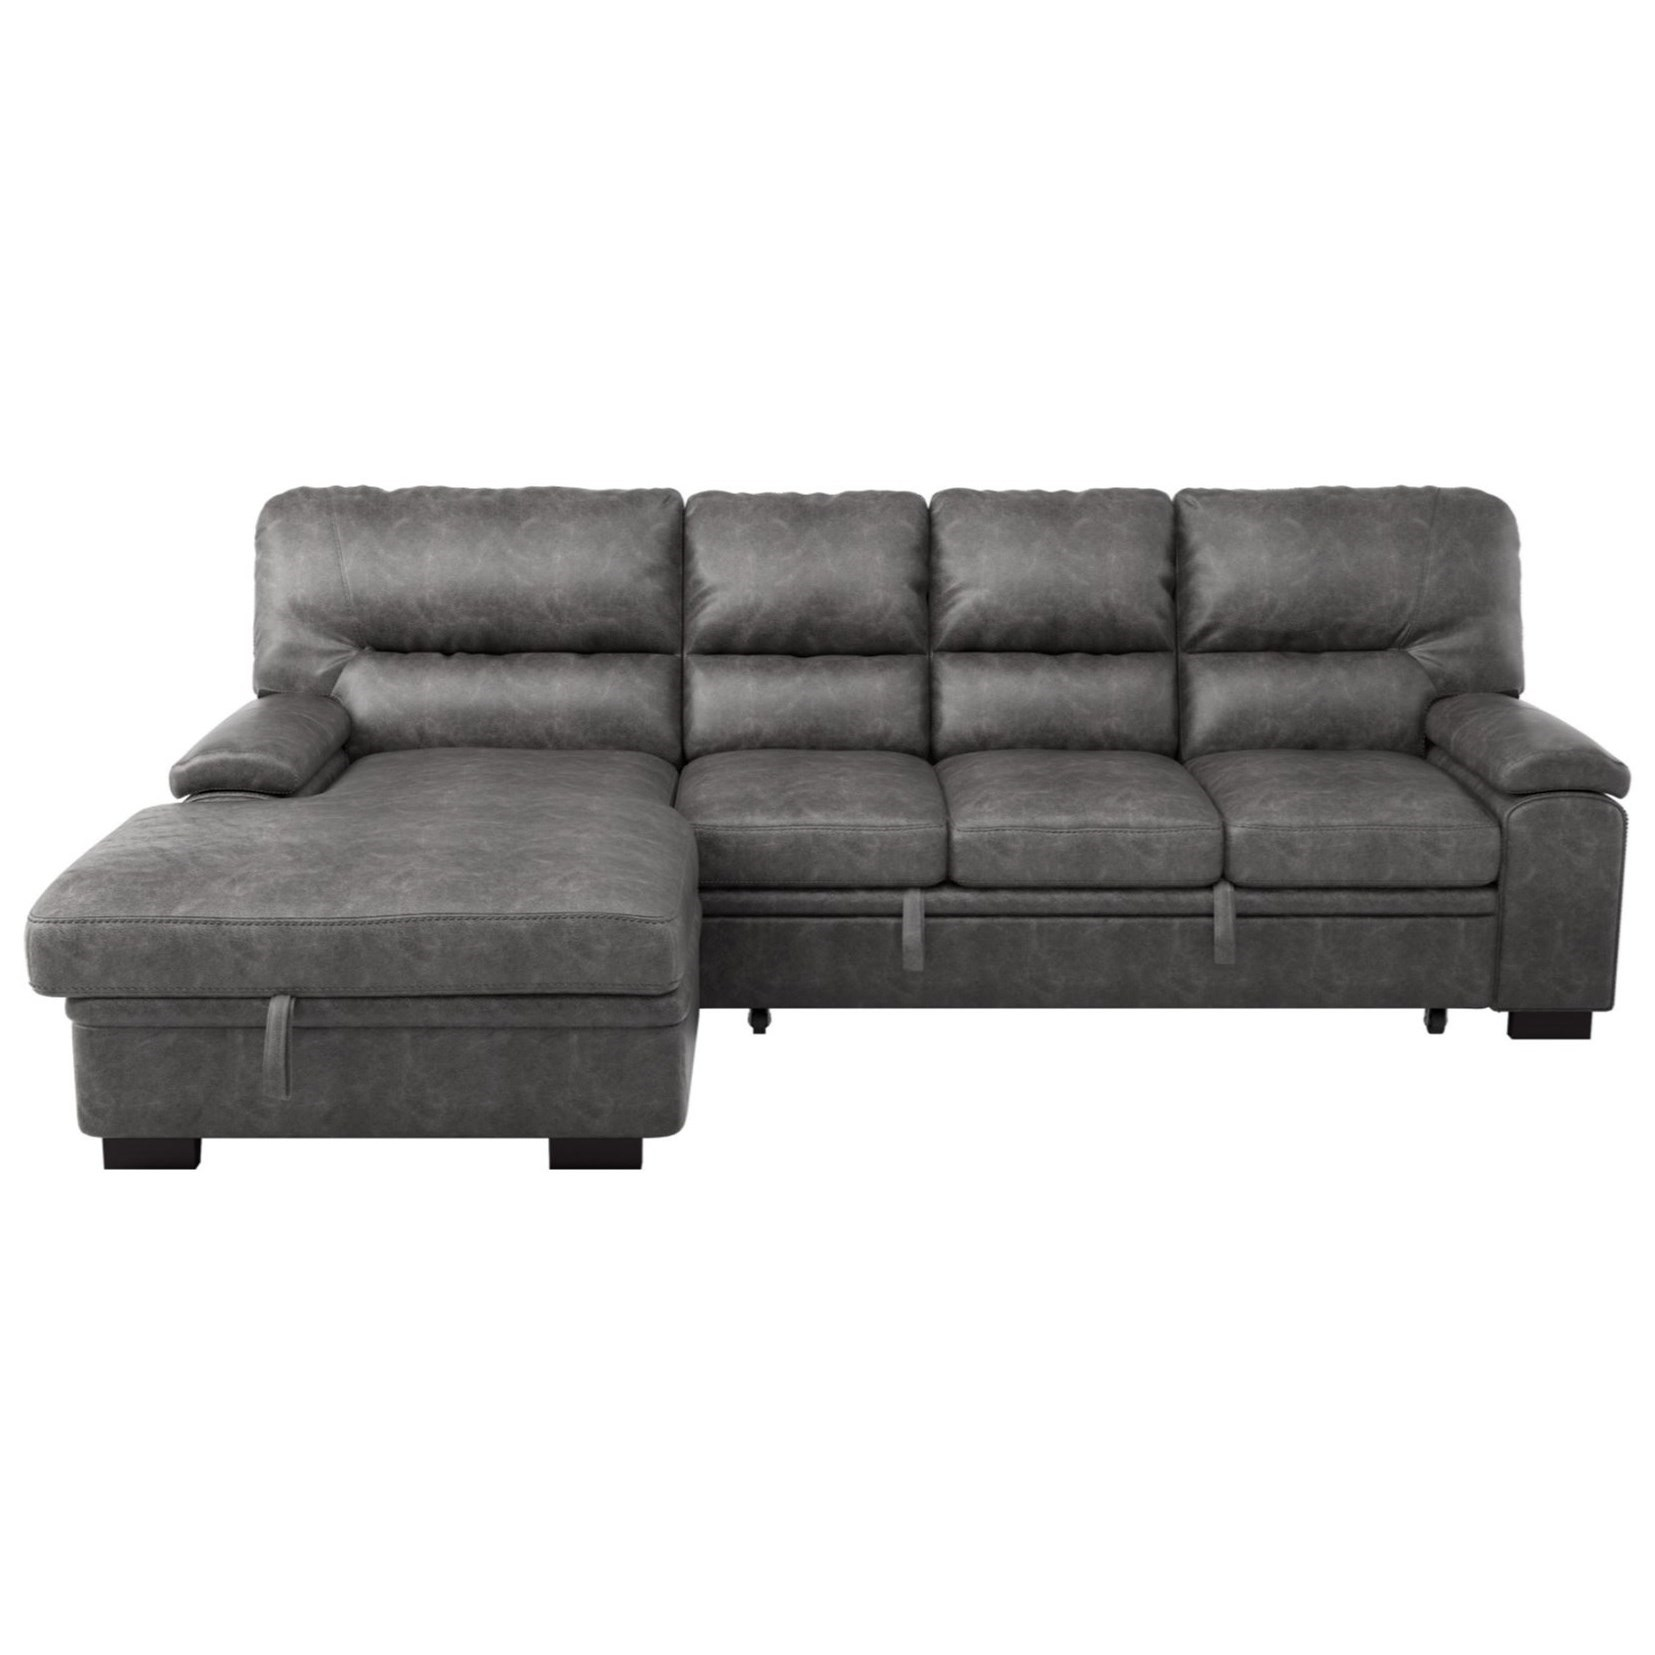 Michigan 2-Piece Sectional with Pull-Out Bed by Homelegance at Darvin Furniture